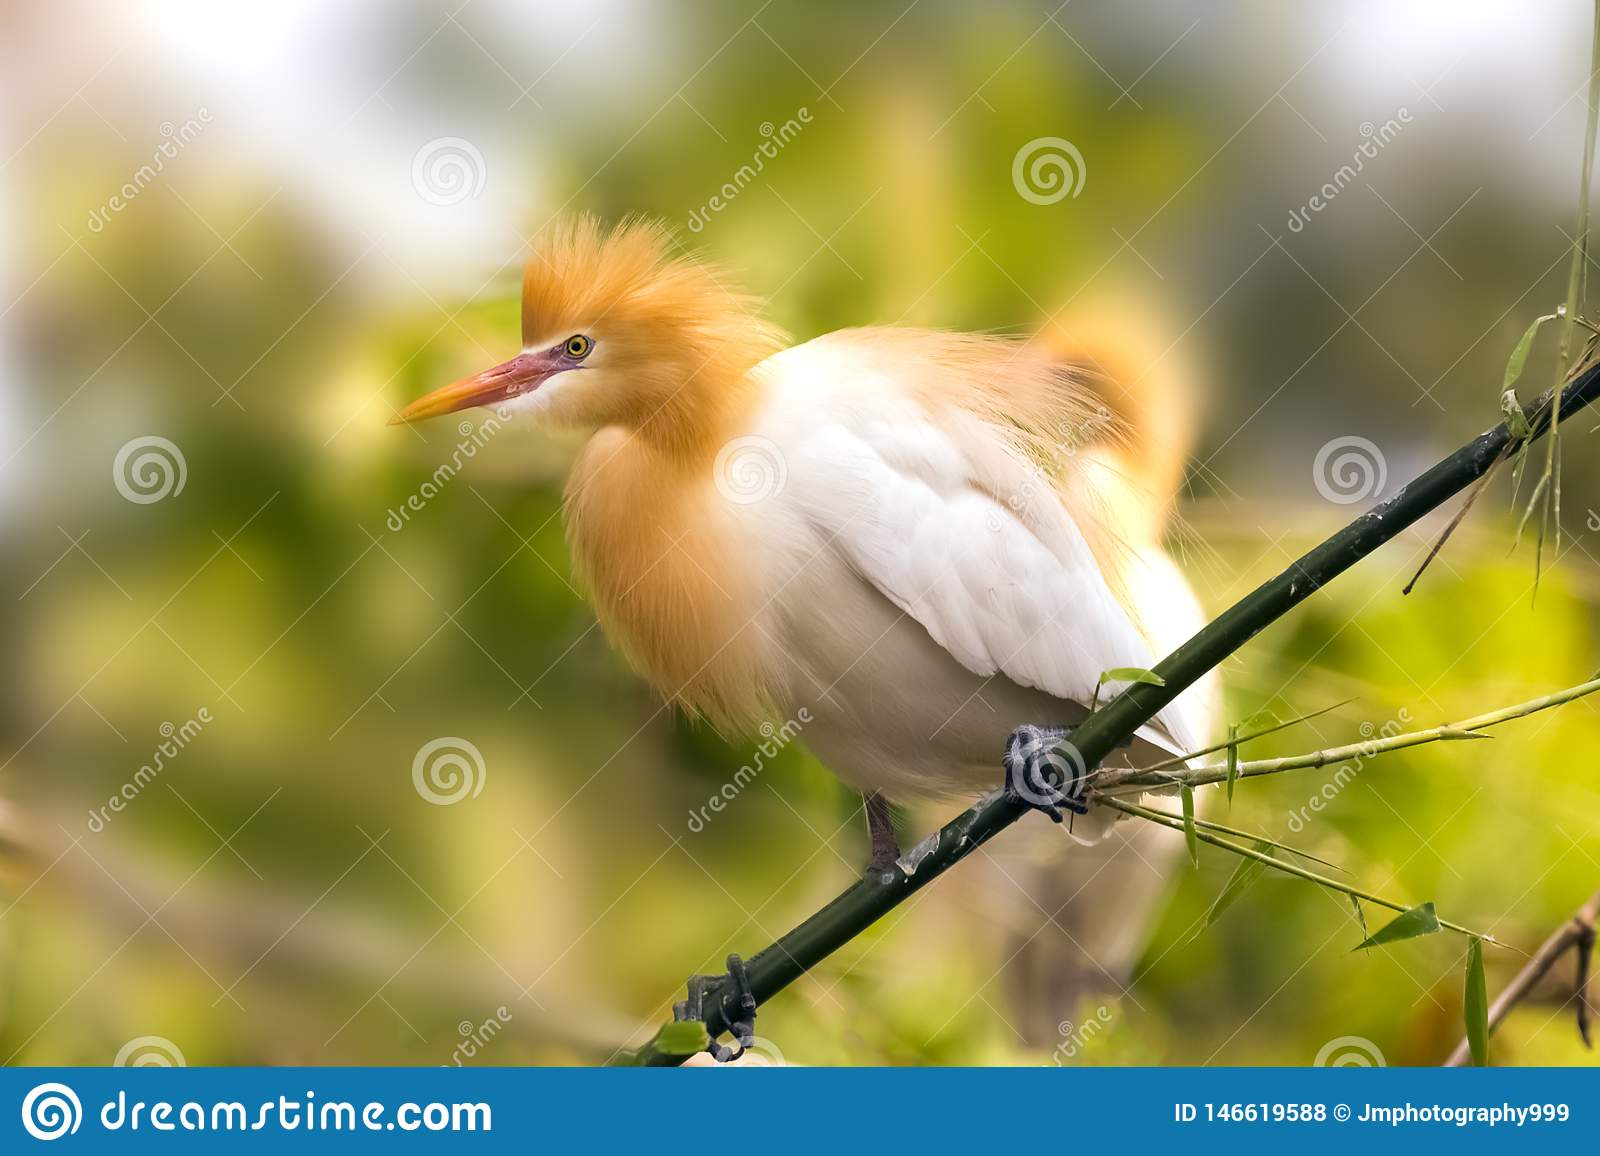 White Cattle egret is found in the bamboo trees lakeside Pokhara Nepal